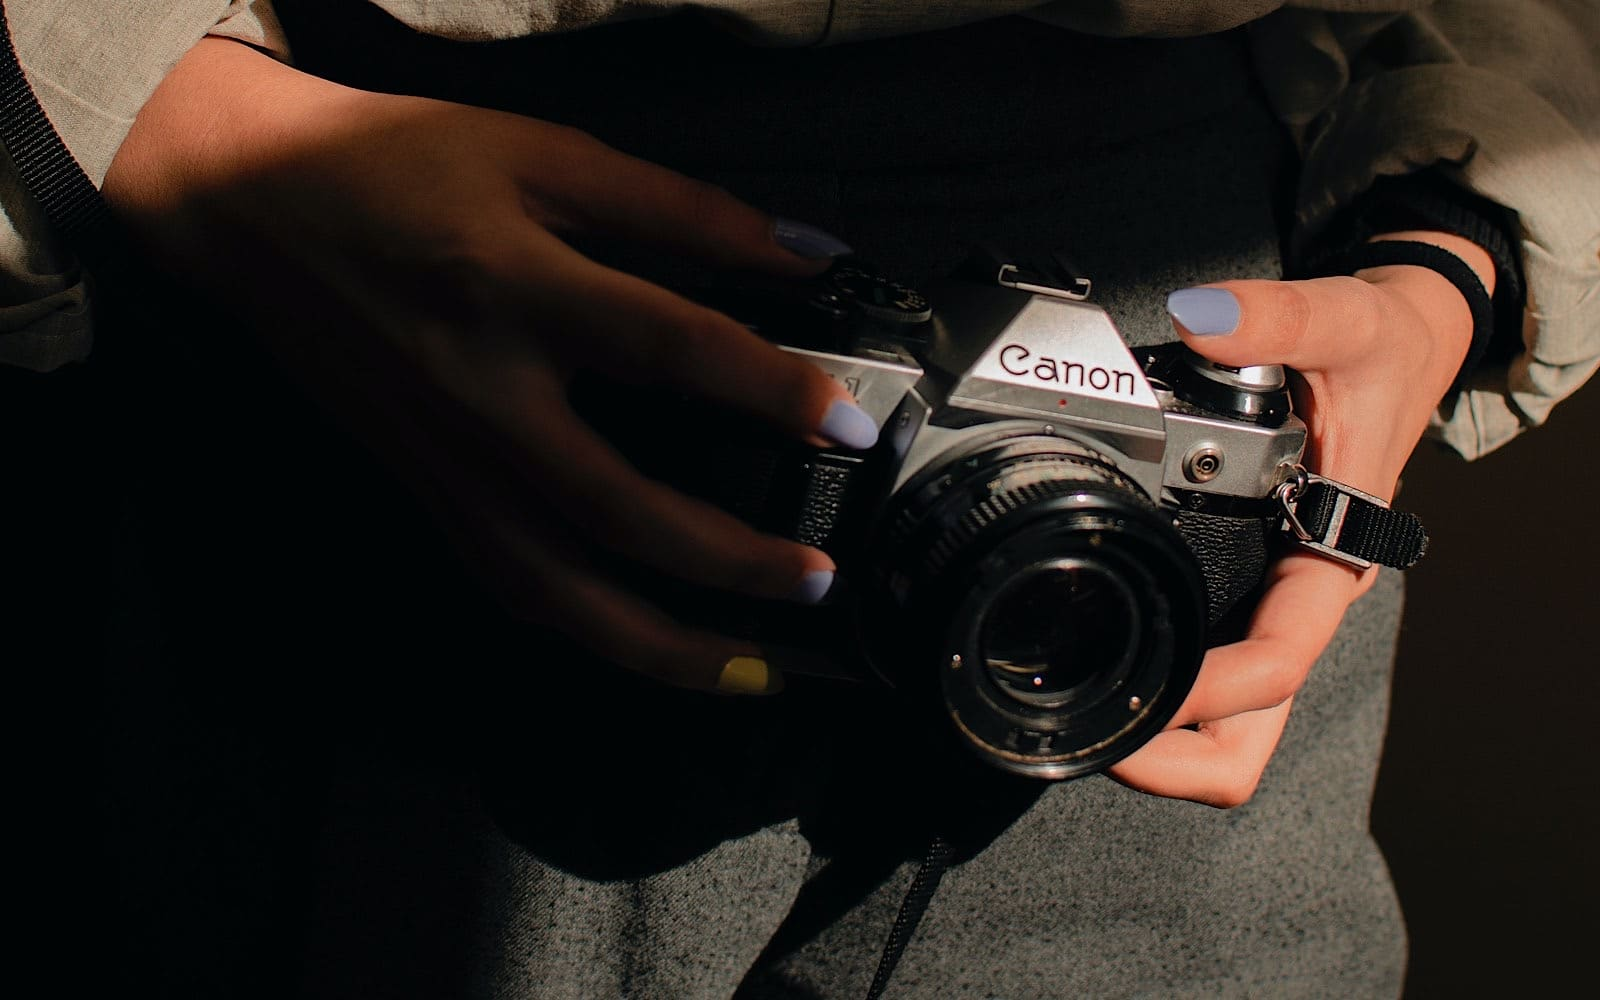 Holding a camera by the sides might make sense, but it's not really what you should do.